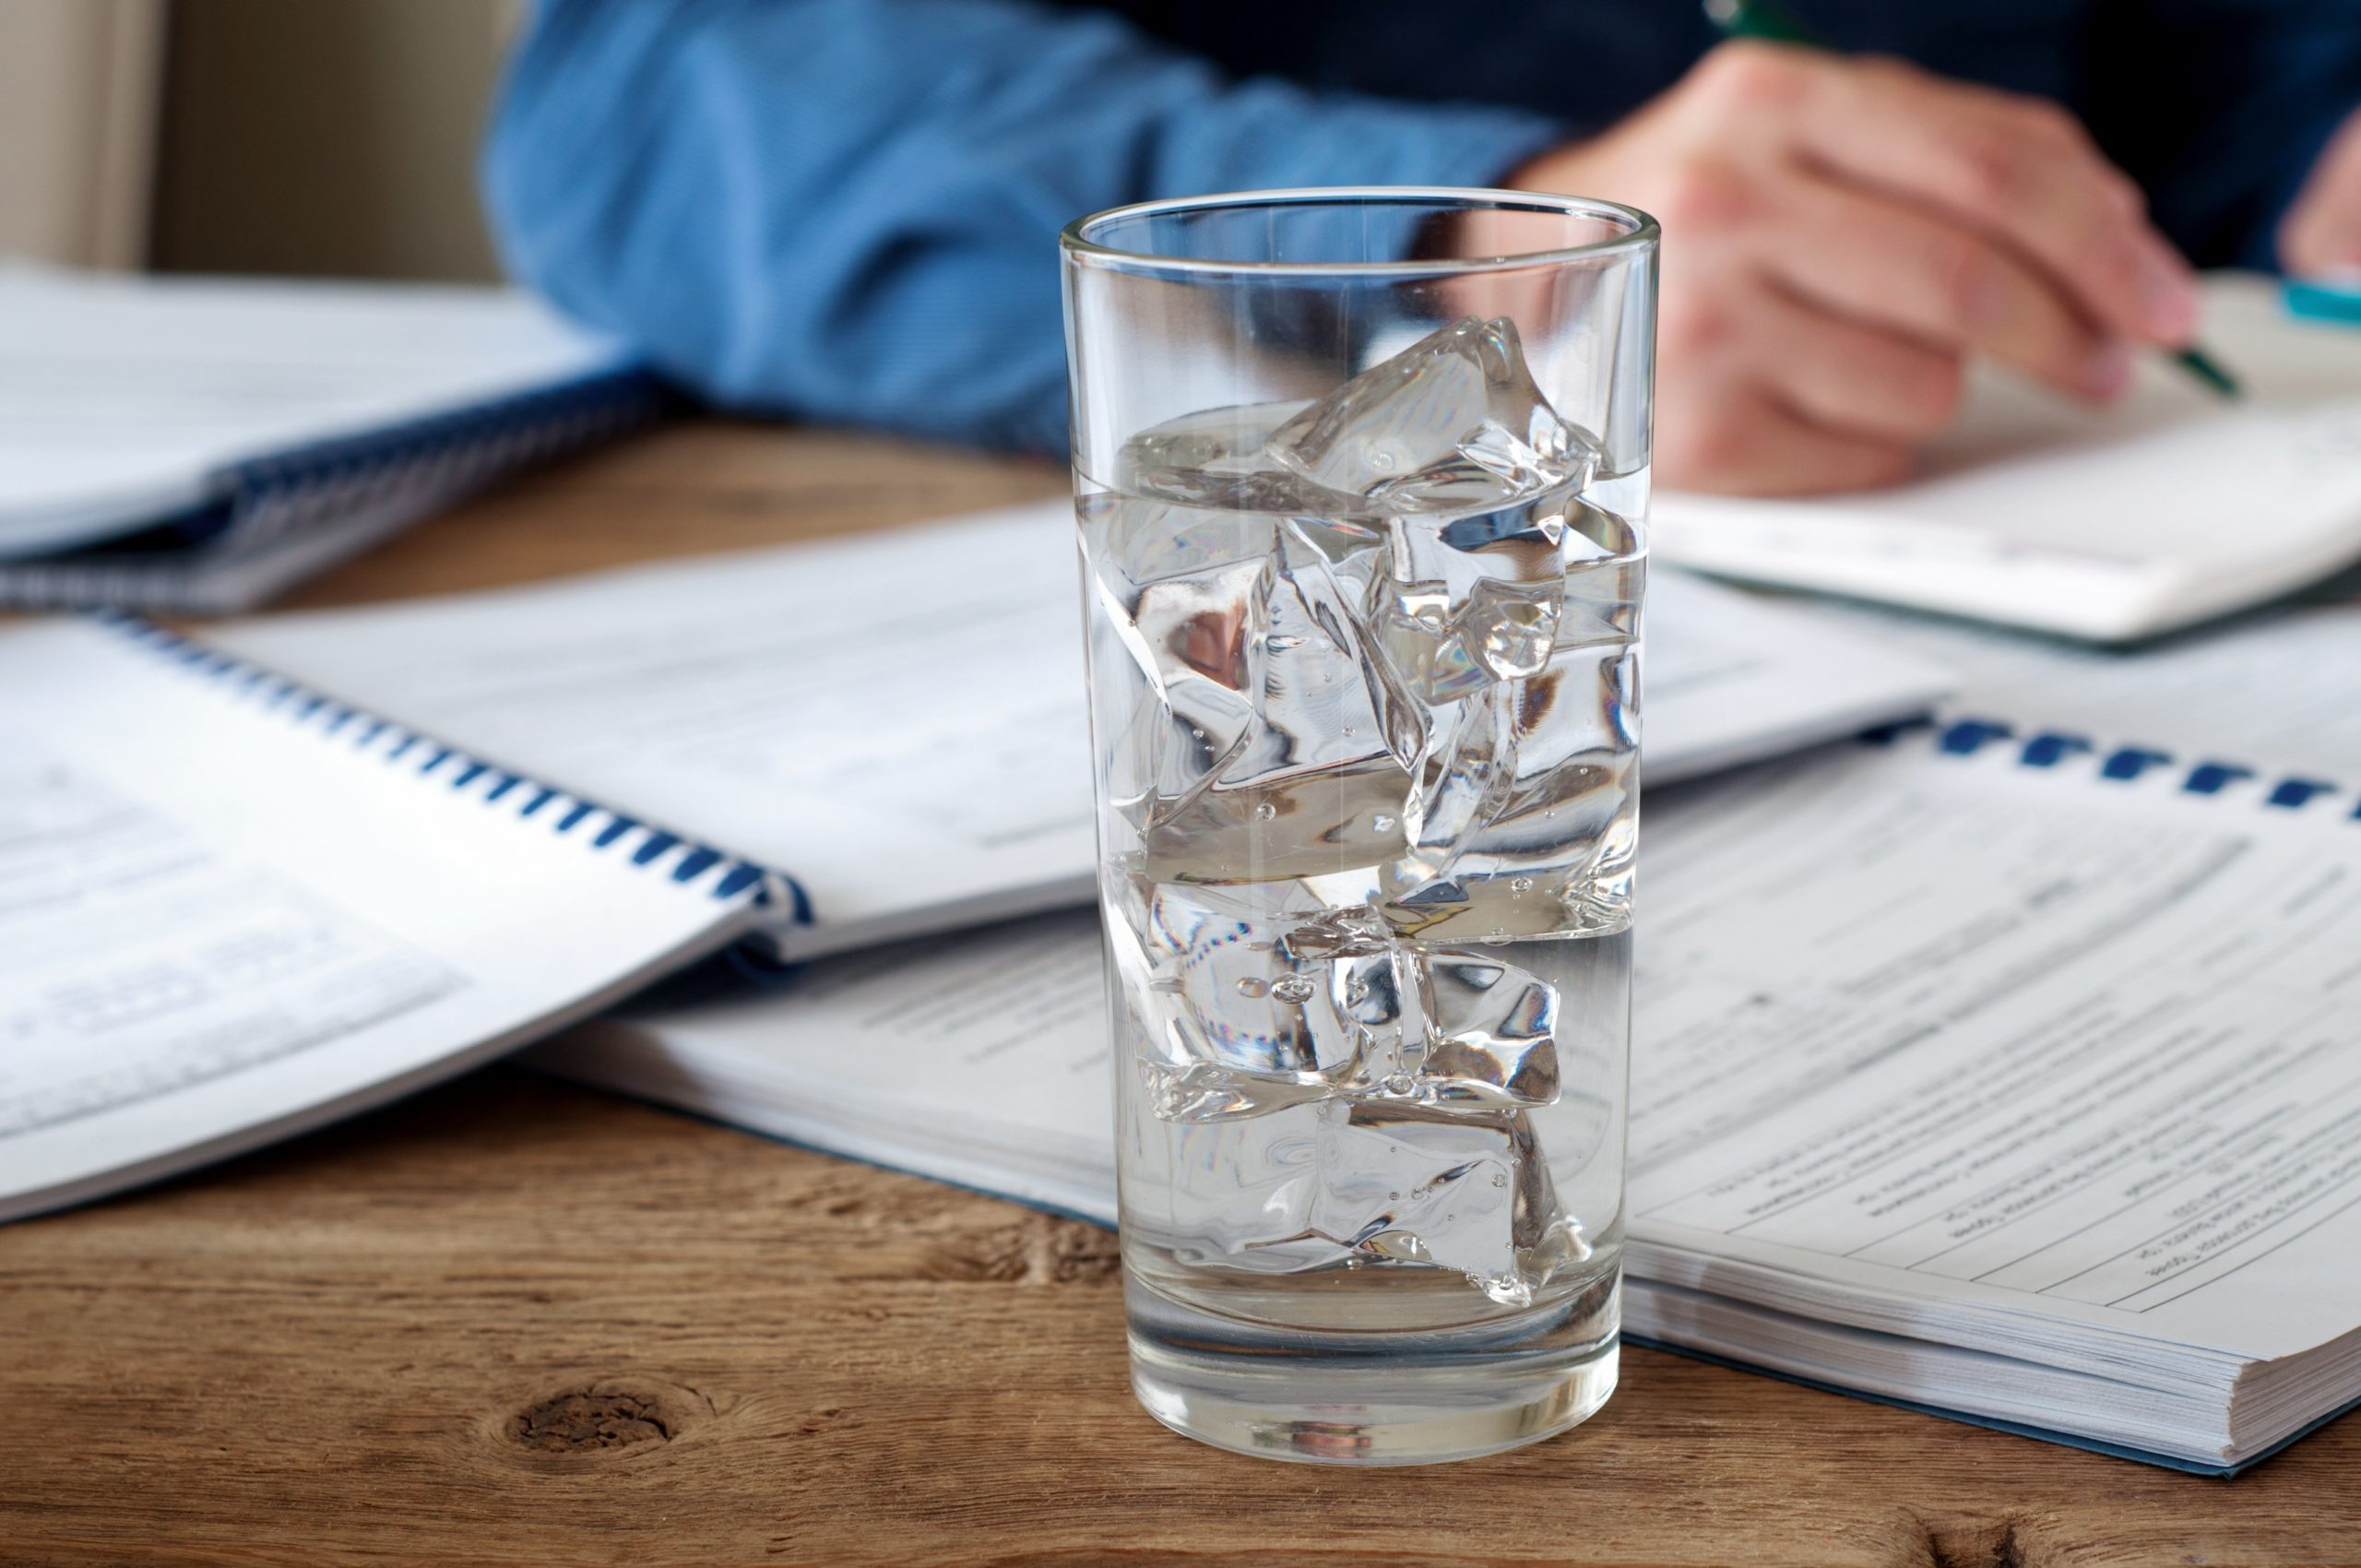 Glass of water with ice on a wooden office table. Against the background of a glass of water running man. Copy space